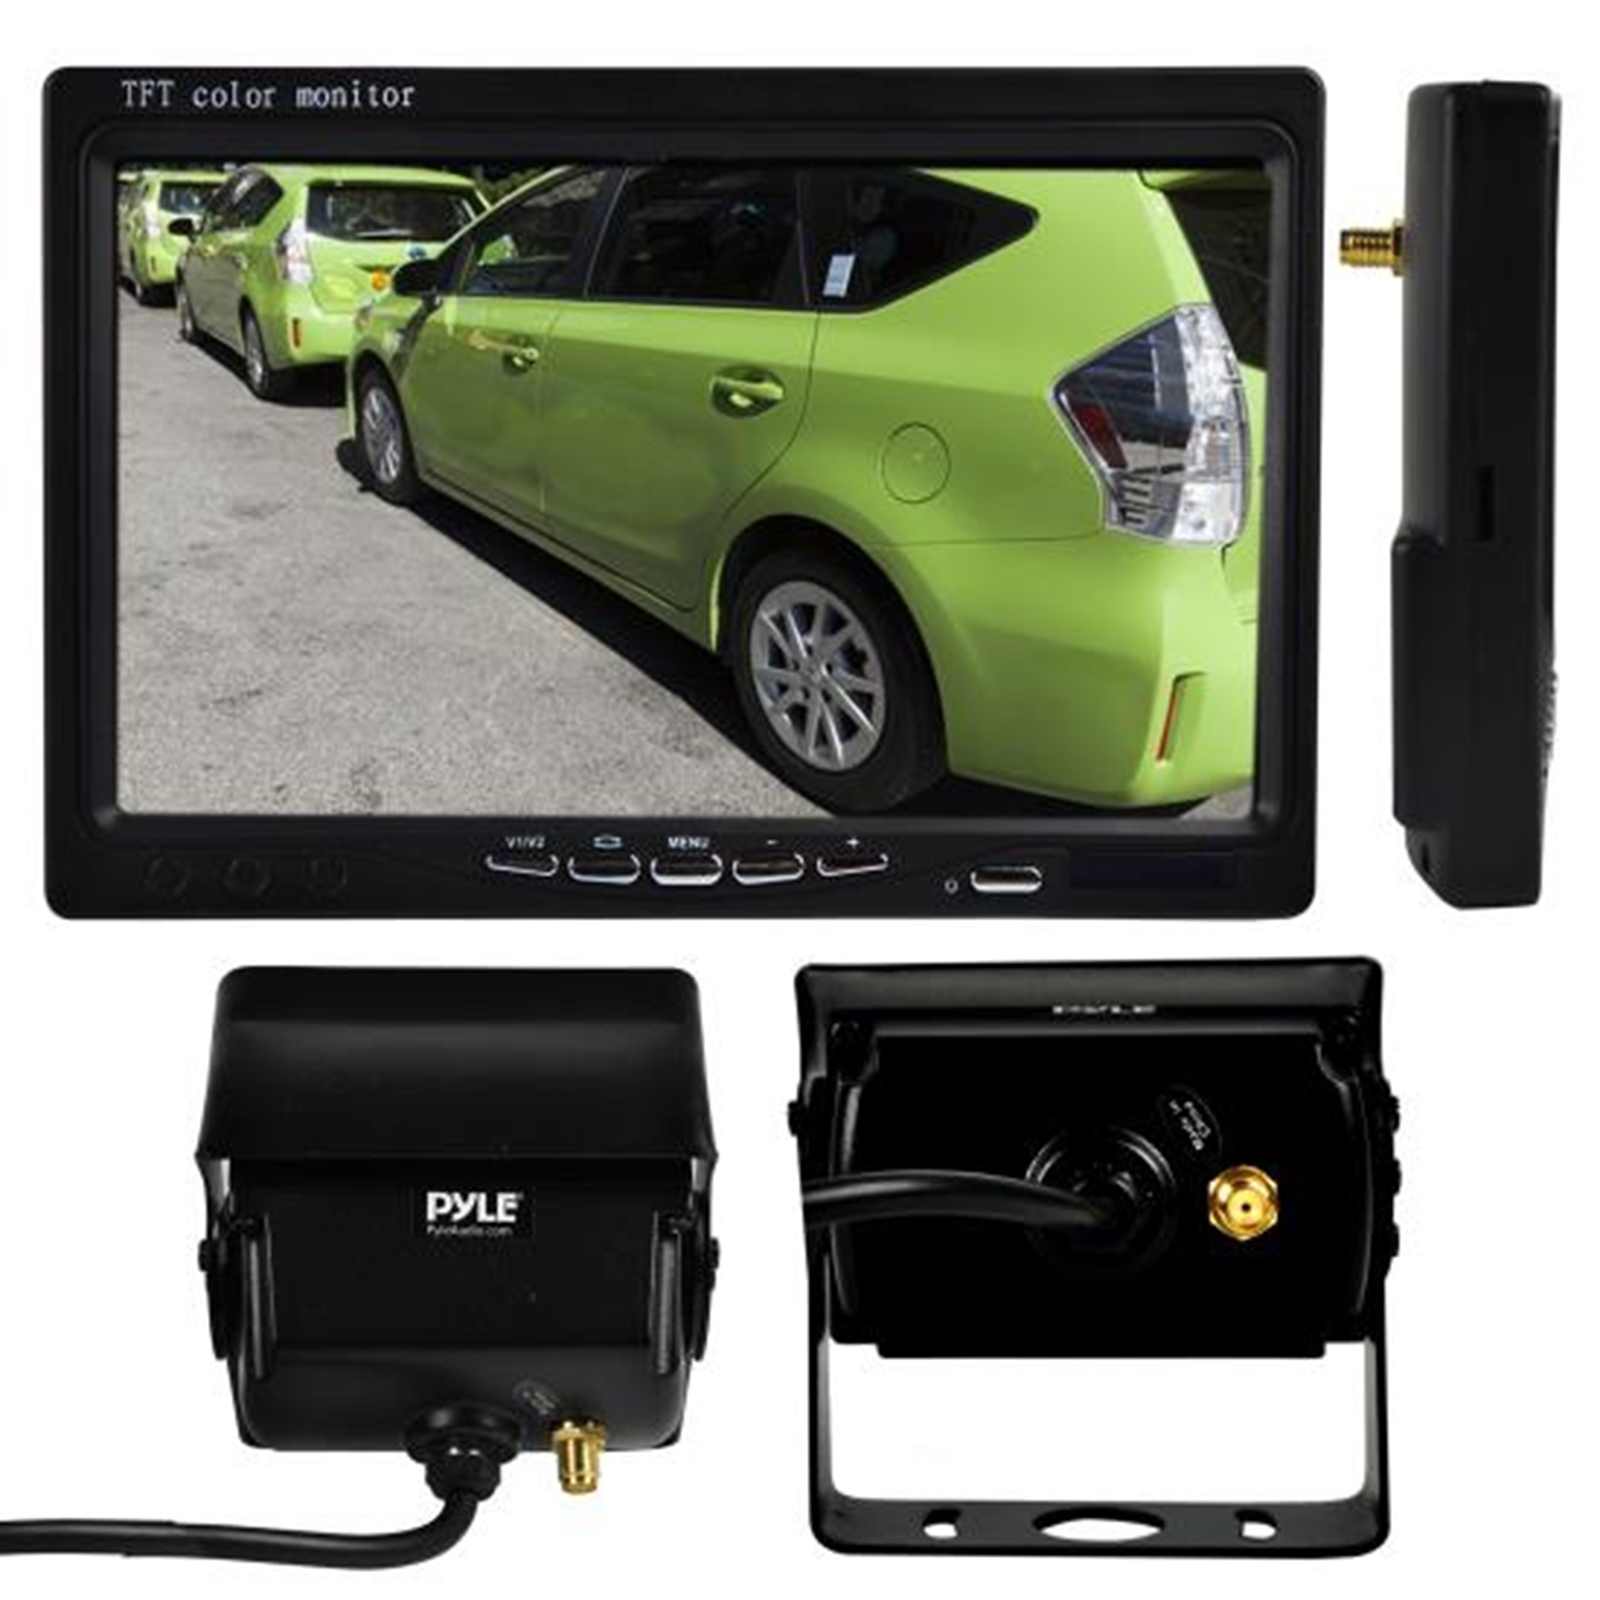 Weatherproof Rearview Backup Camera & Monitor Video System, Commercial Grade Night Vision Camera, 7""